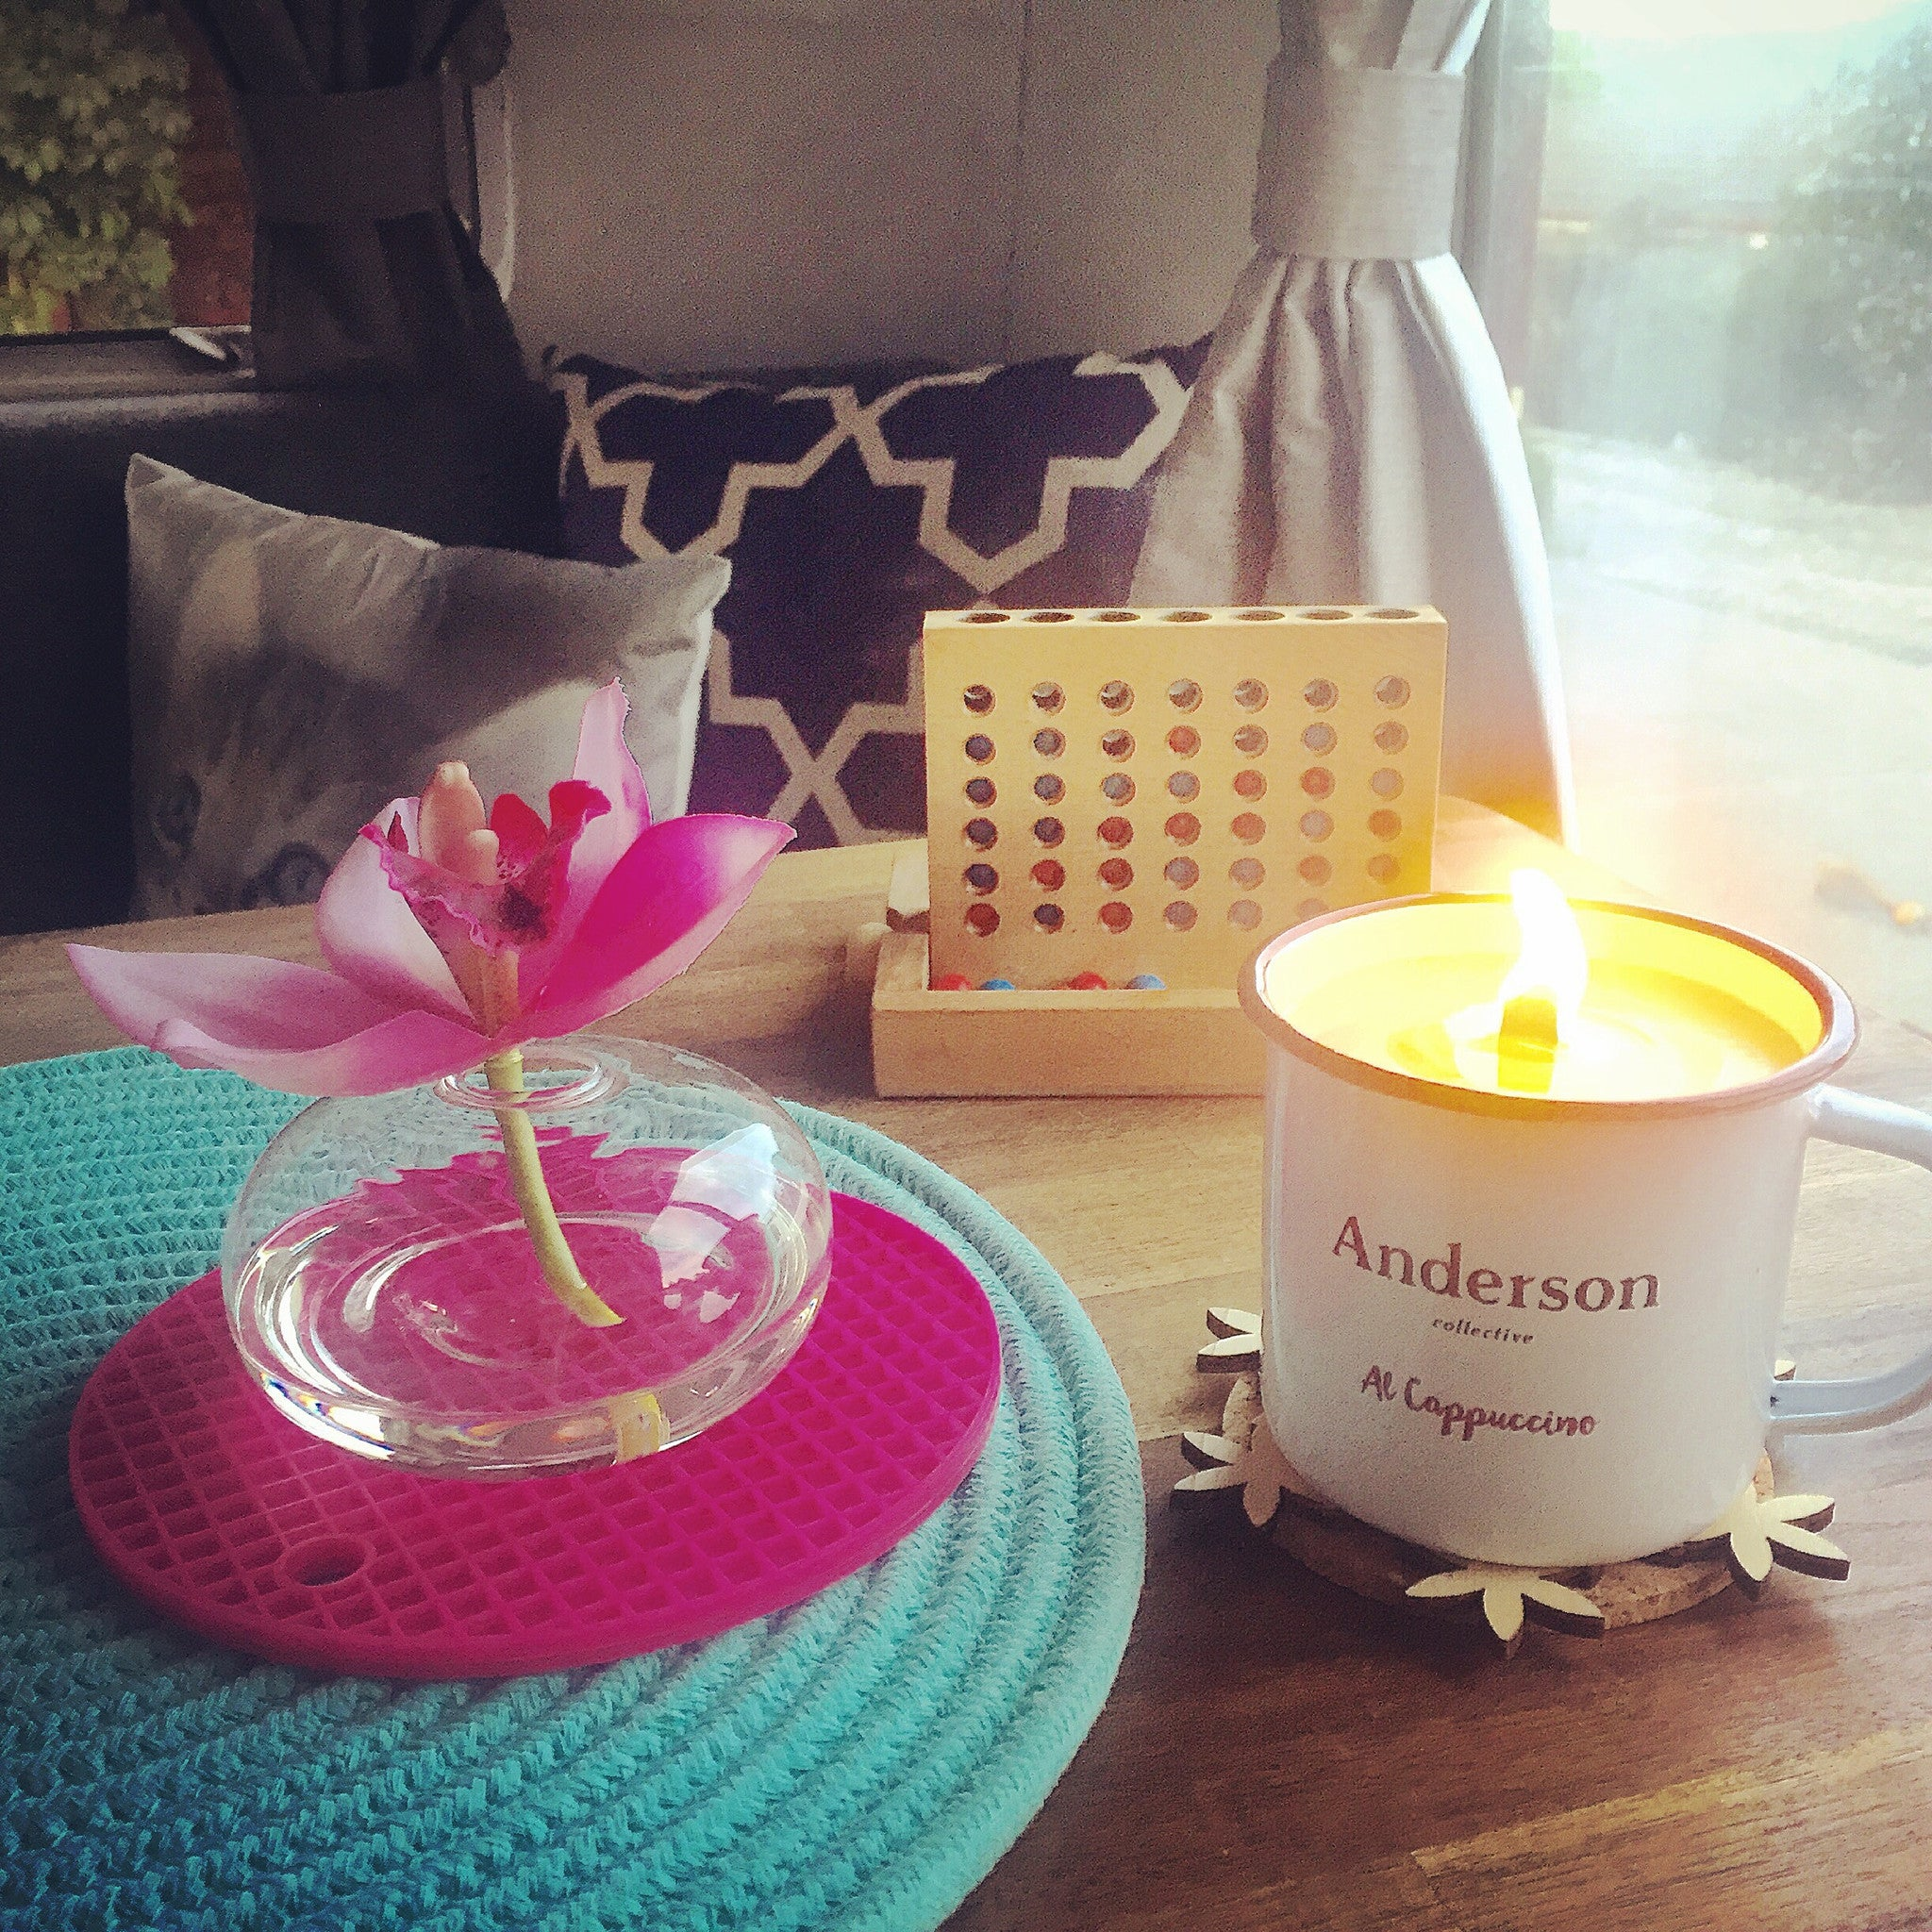 Glamping Hero - The Anderson Collective Candles